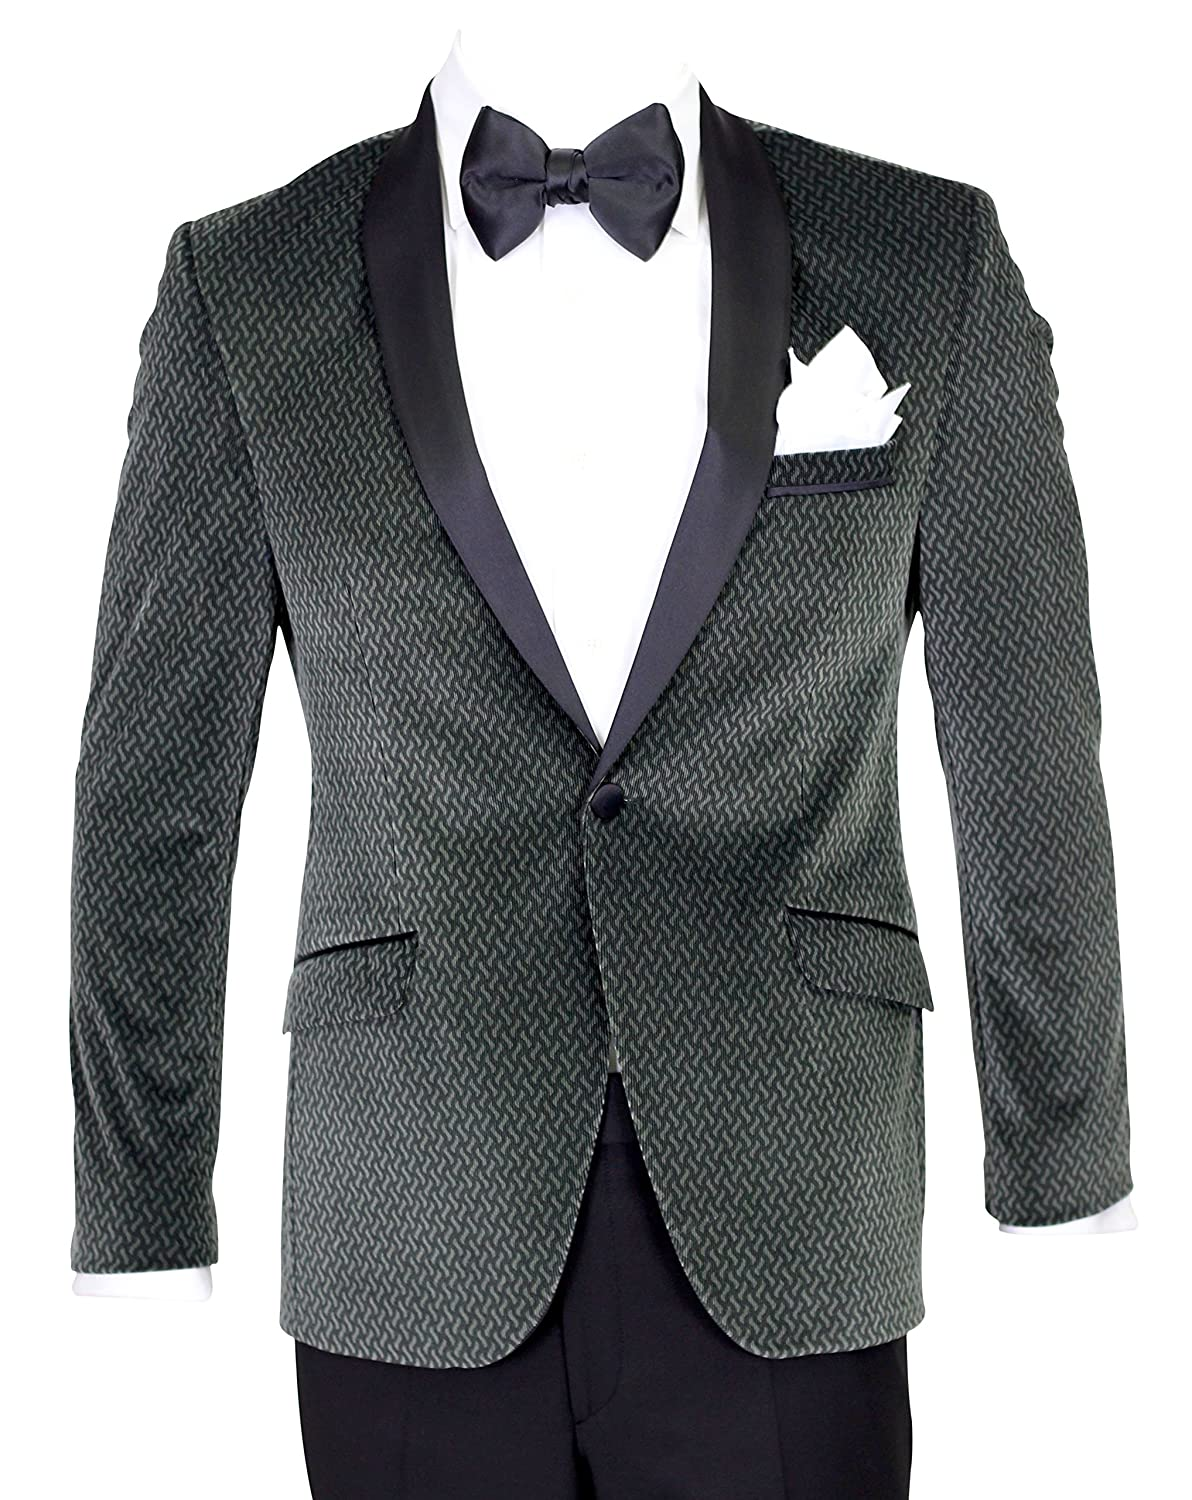 Giangiulio - Seaweed Green Velvet Dinner Jacket/Suit with Satin Lapel